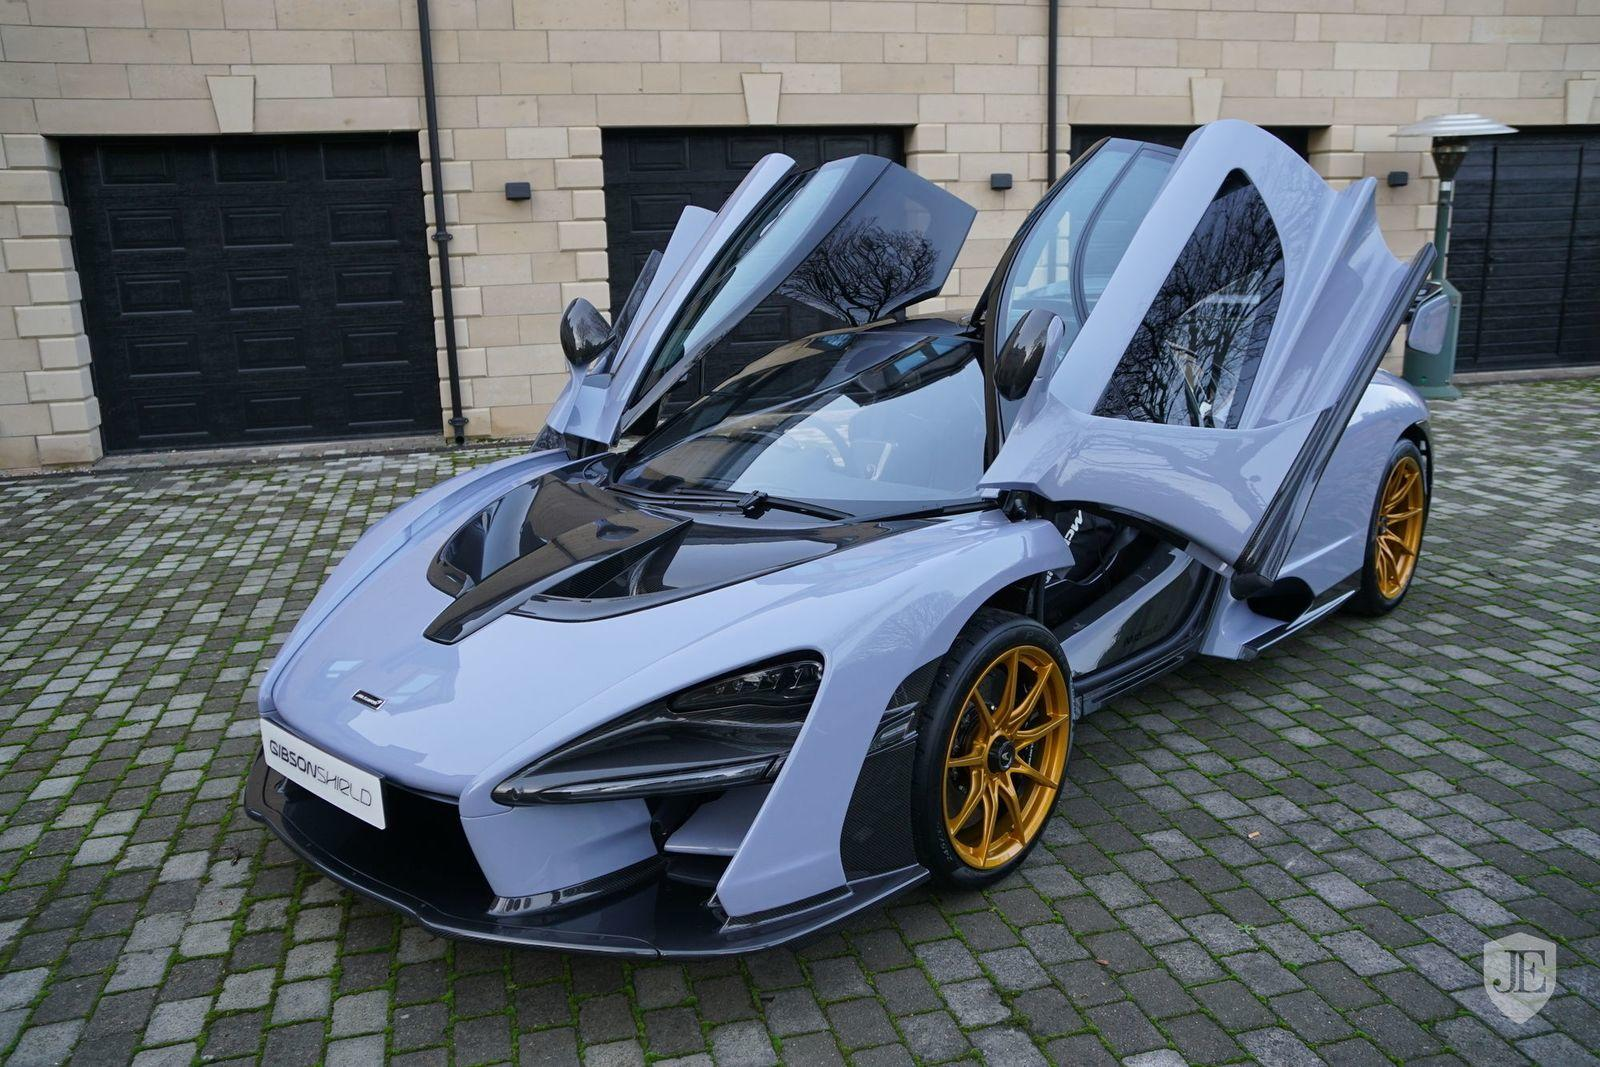 Cars For Sale 5000 >> Car For Sale: 2018 McLaren Senna With Just 14 Miles On The ...